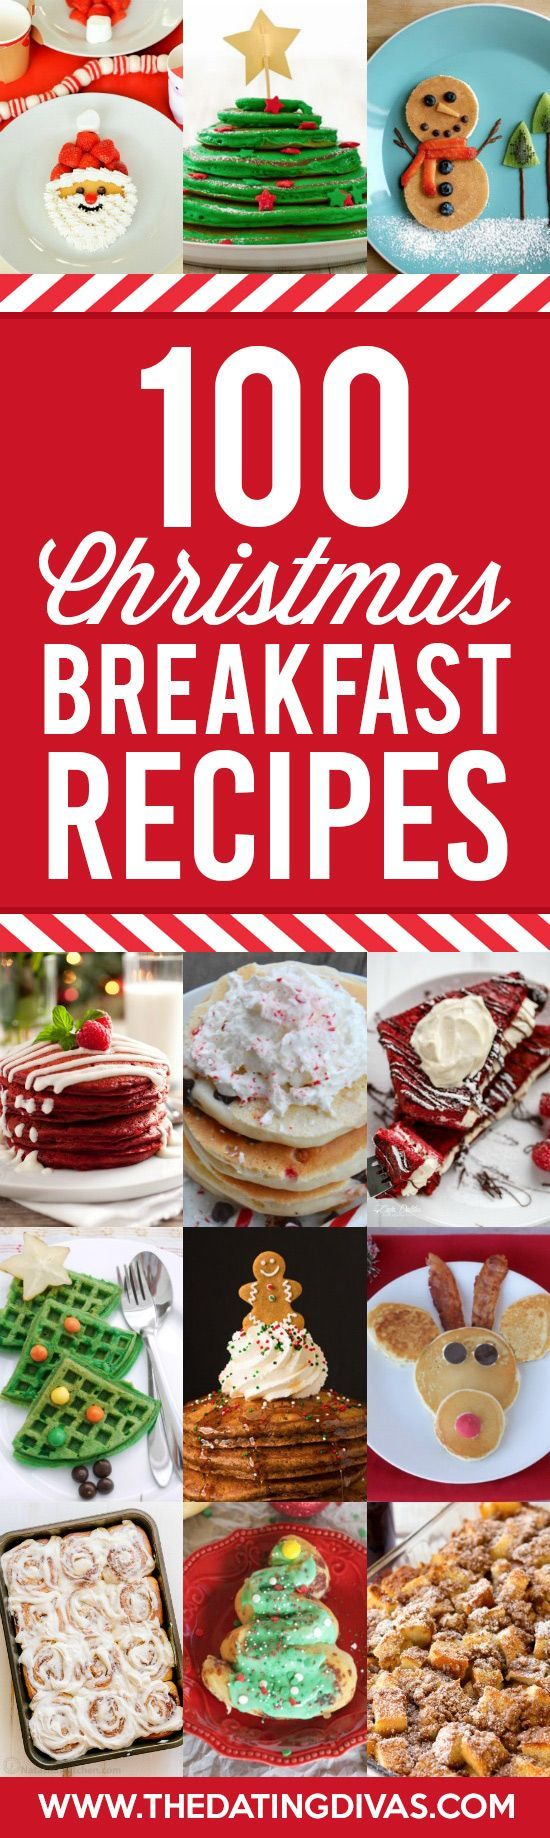 100 perfect Christmas Breakfast Recipes gathered into one place! No matter how many you need to feed or how much time you want to spend this post has you covered!